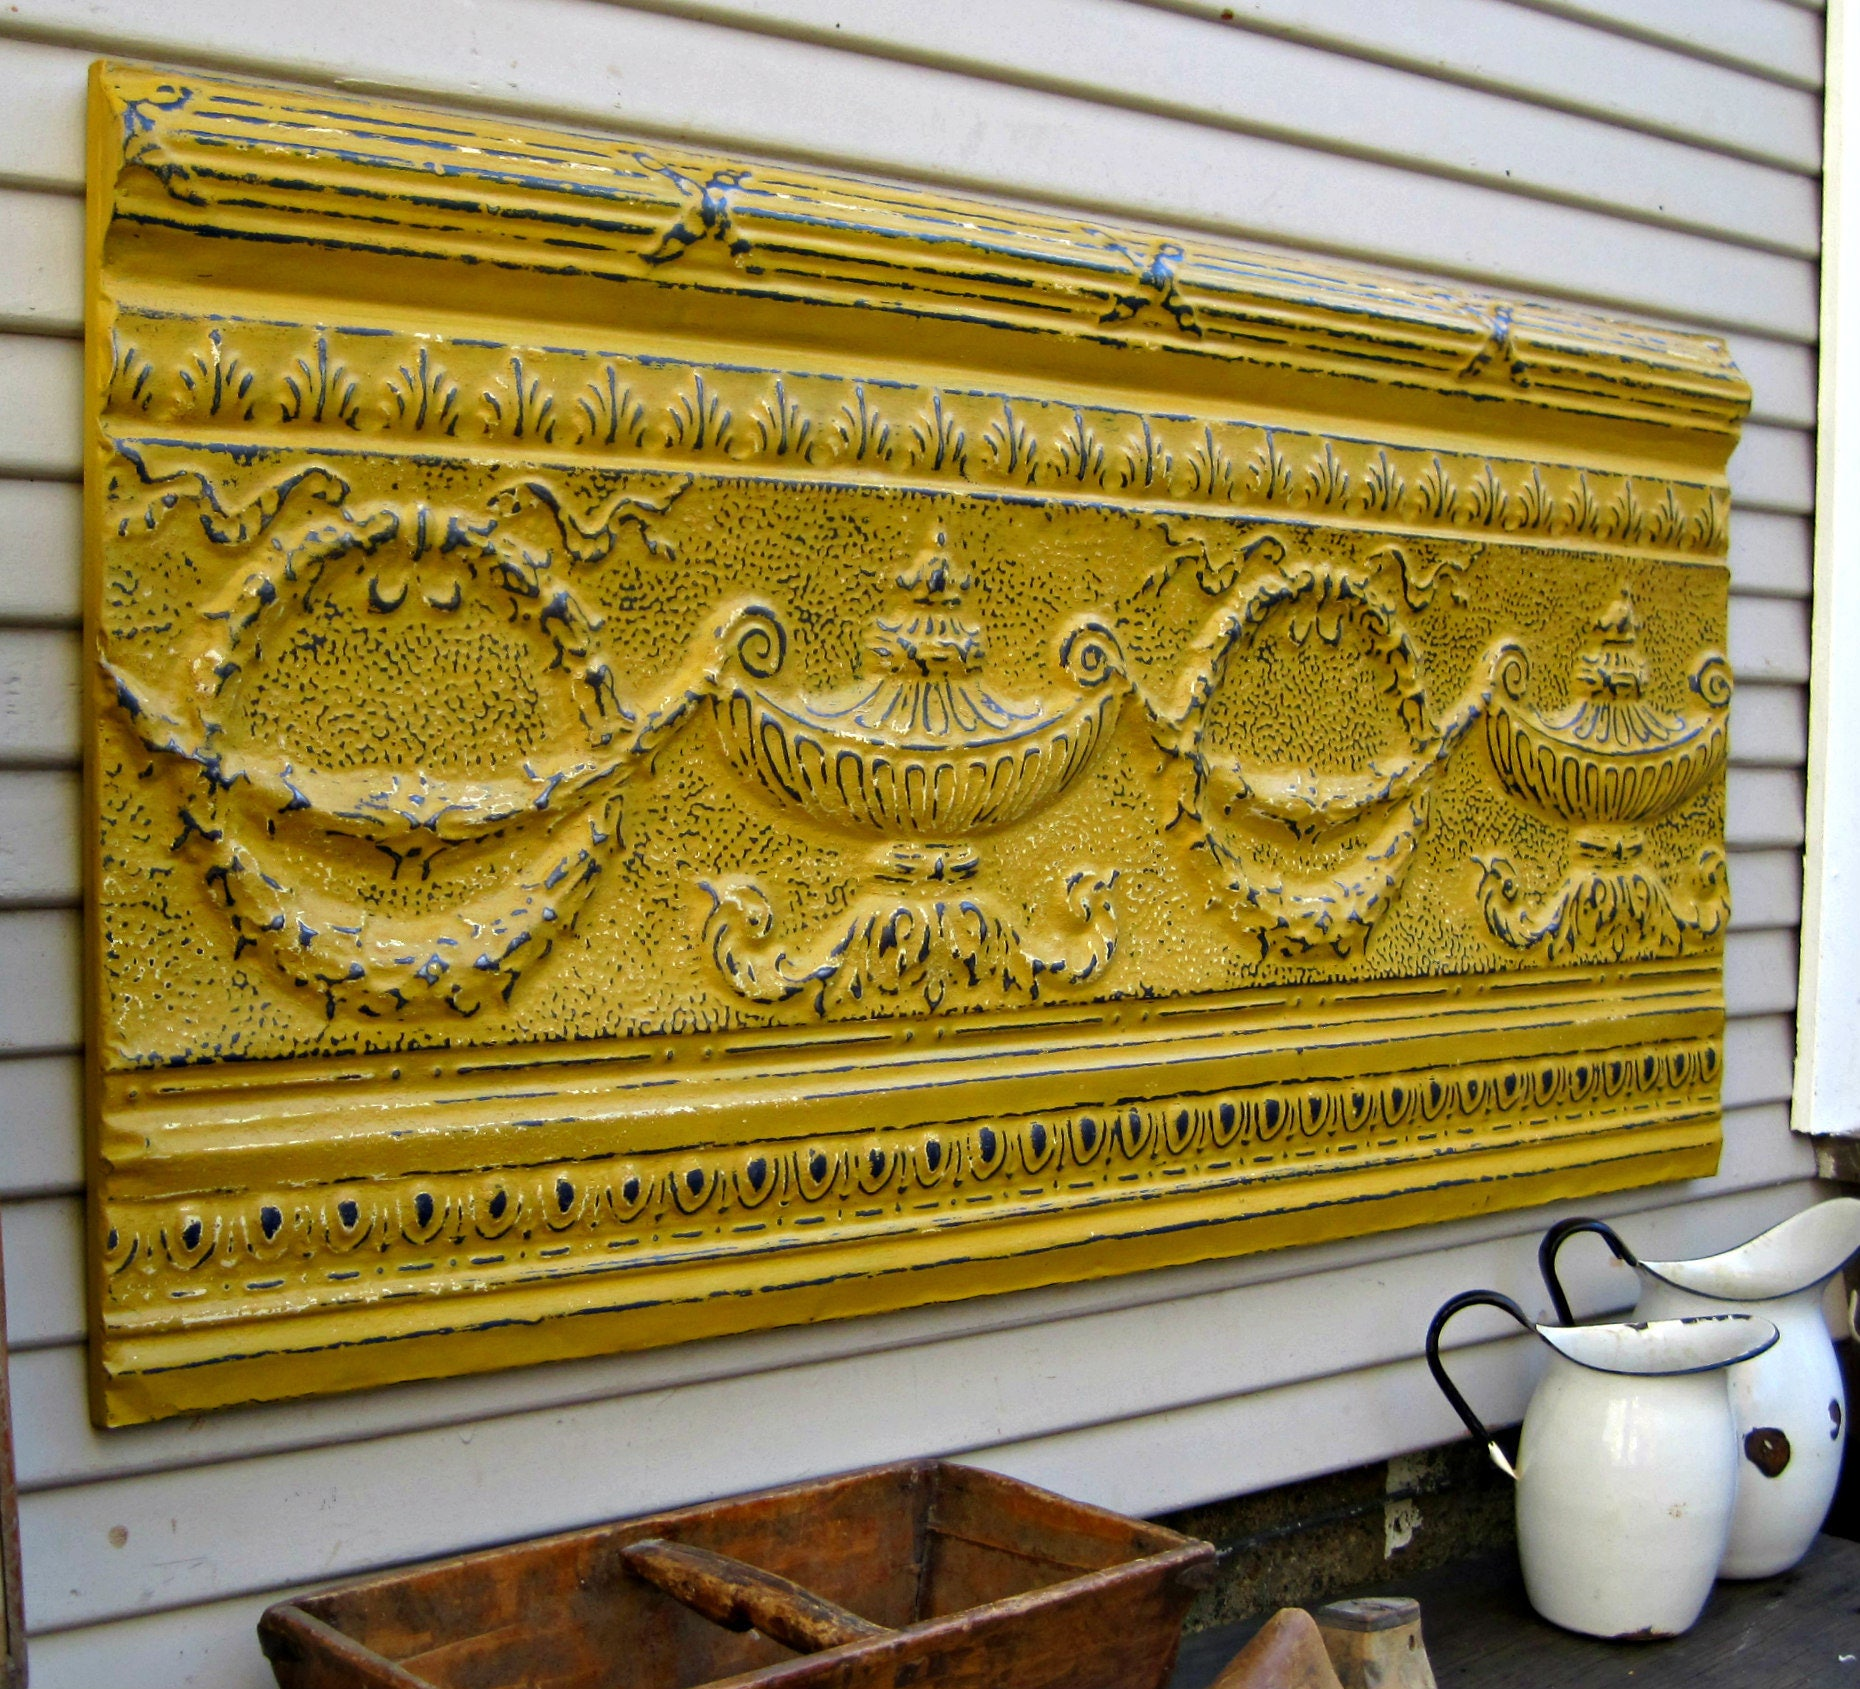 Outstanding Antique Architectural Wall Decor Sketch - All About ...